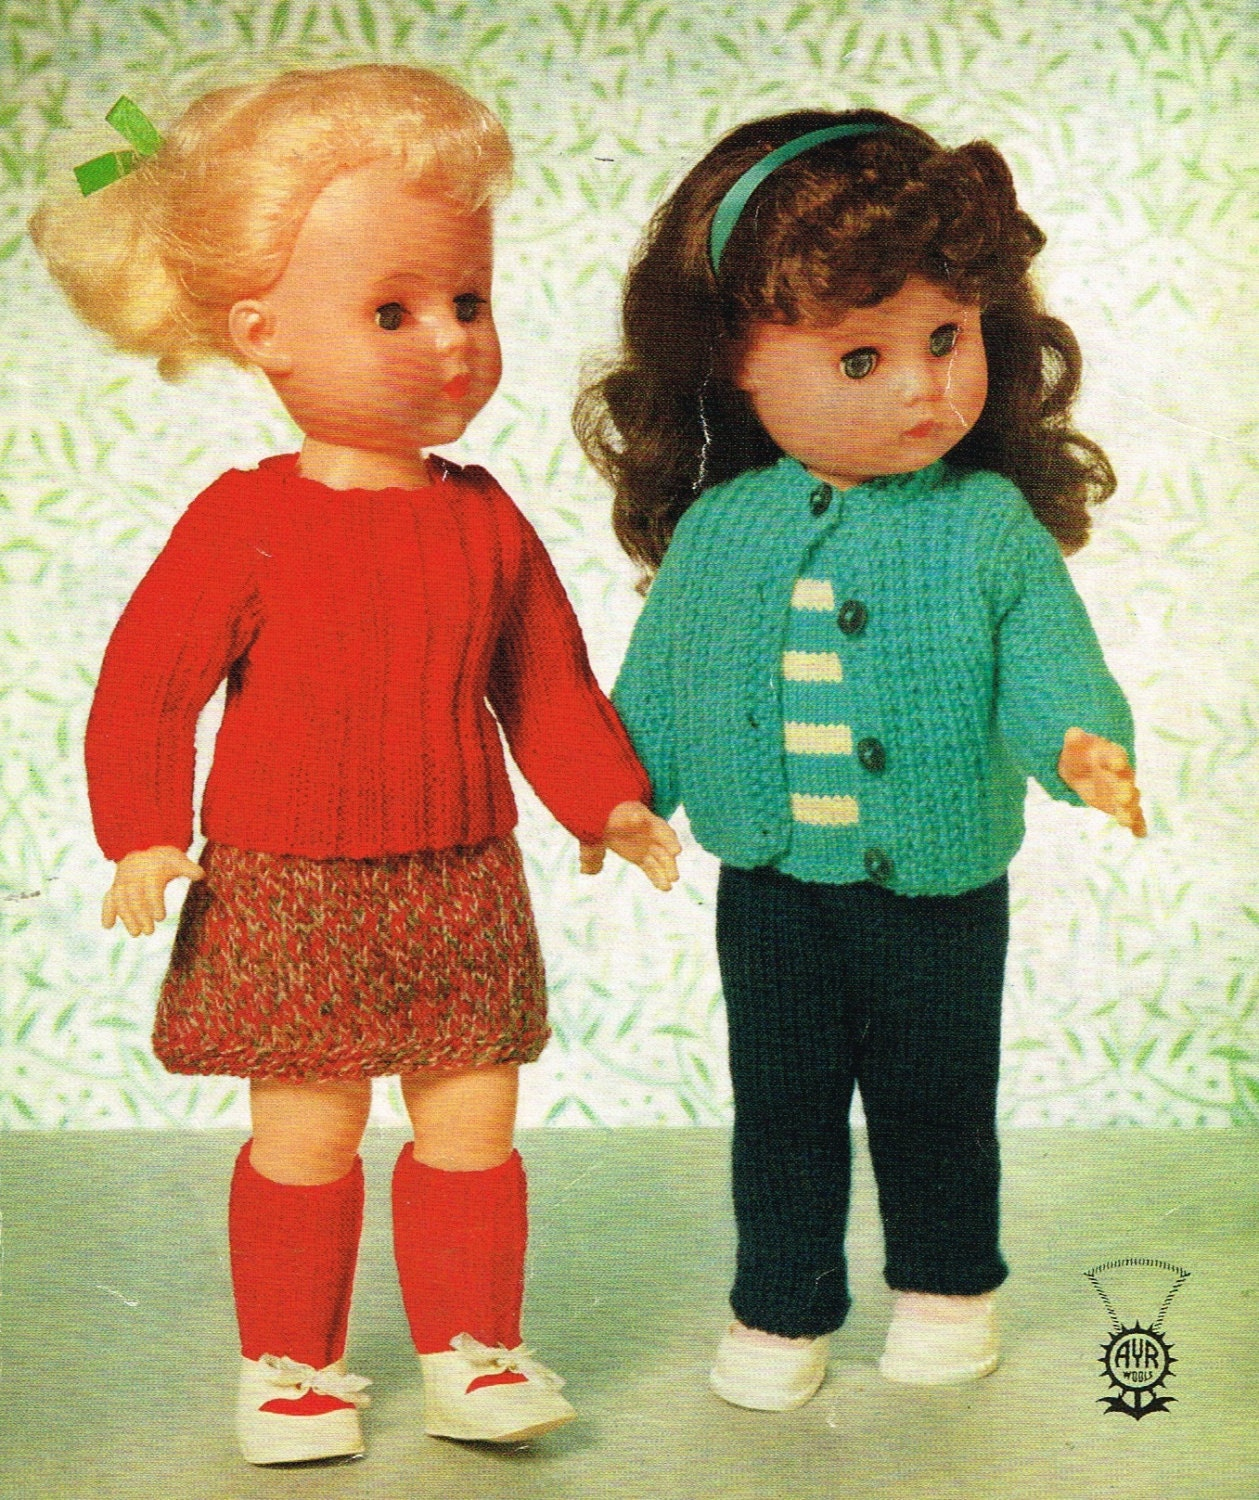 Vintage Knitting Patterns Dolls Clothes : 16 inch Dolls Clothes Knitting and crochet pattern. Vintage